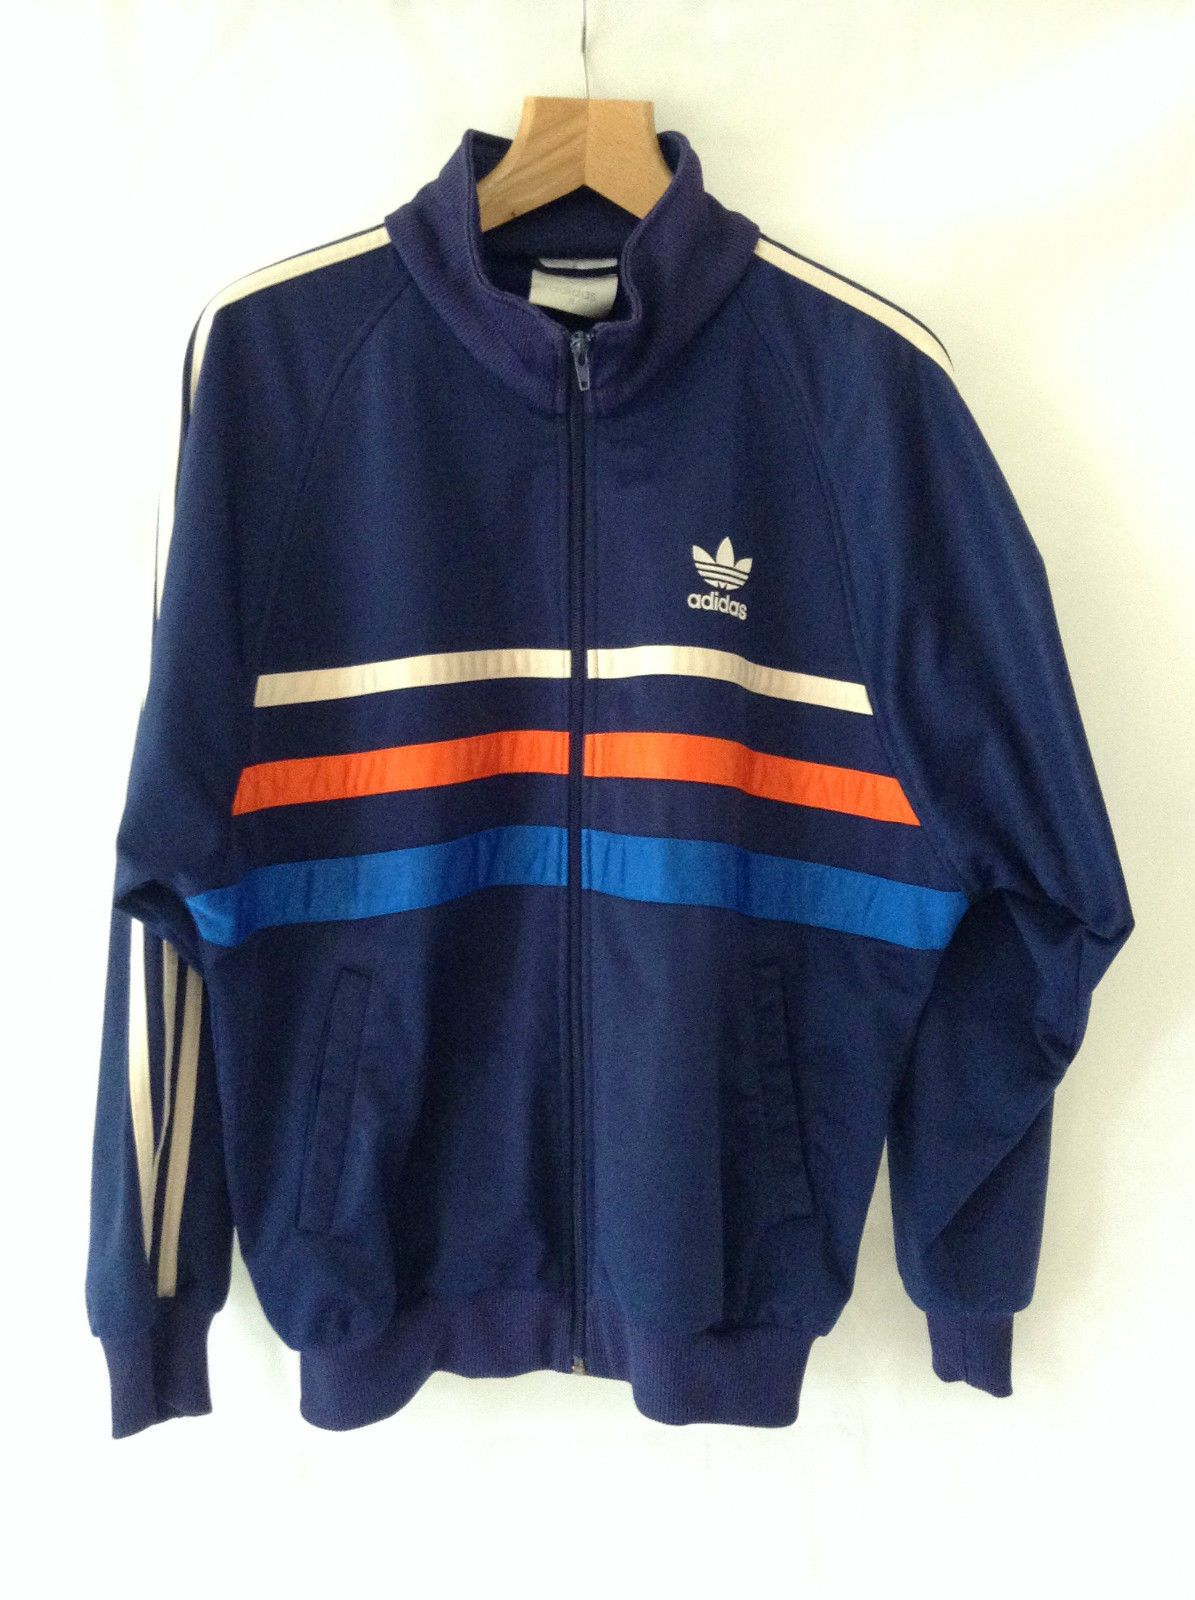 be3af9fa7cb9f6 ADIDAS VINTAGE 80S MENS OVERSIZED ZIPPER TRACKSUIT JACKET CHEST 42